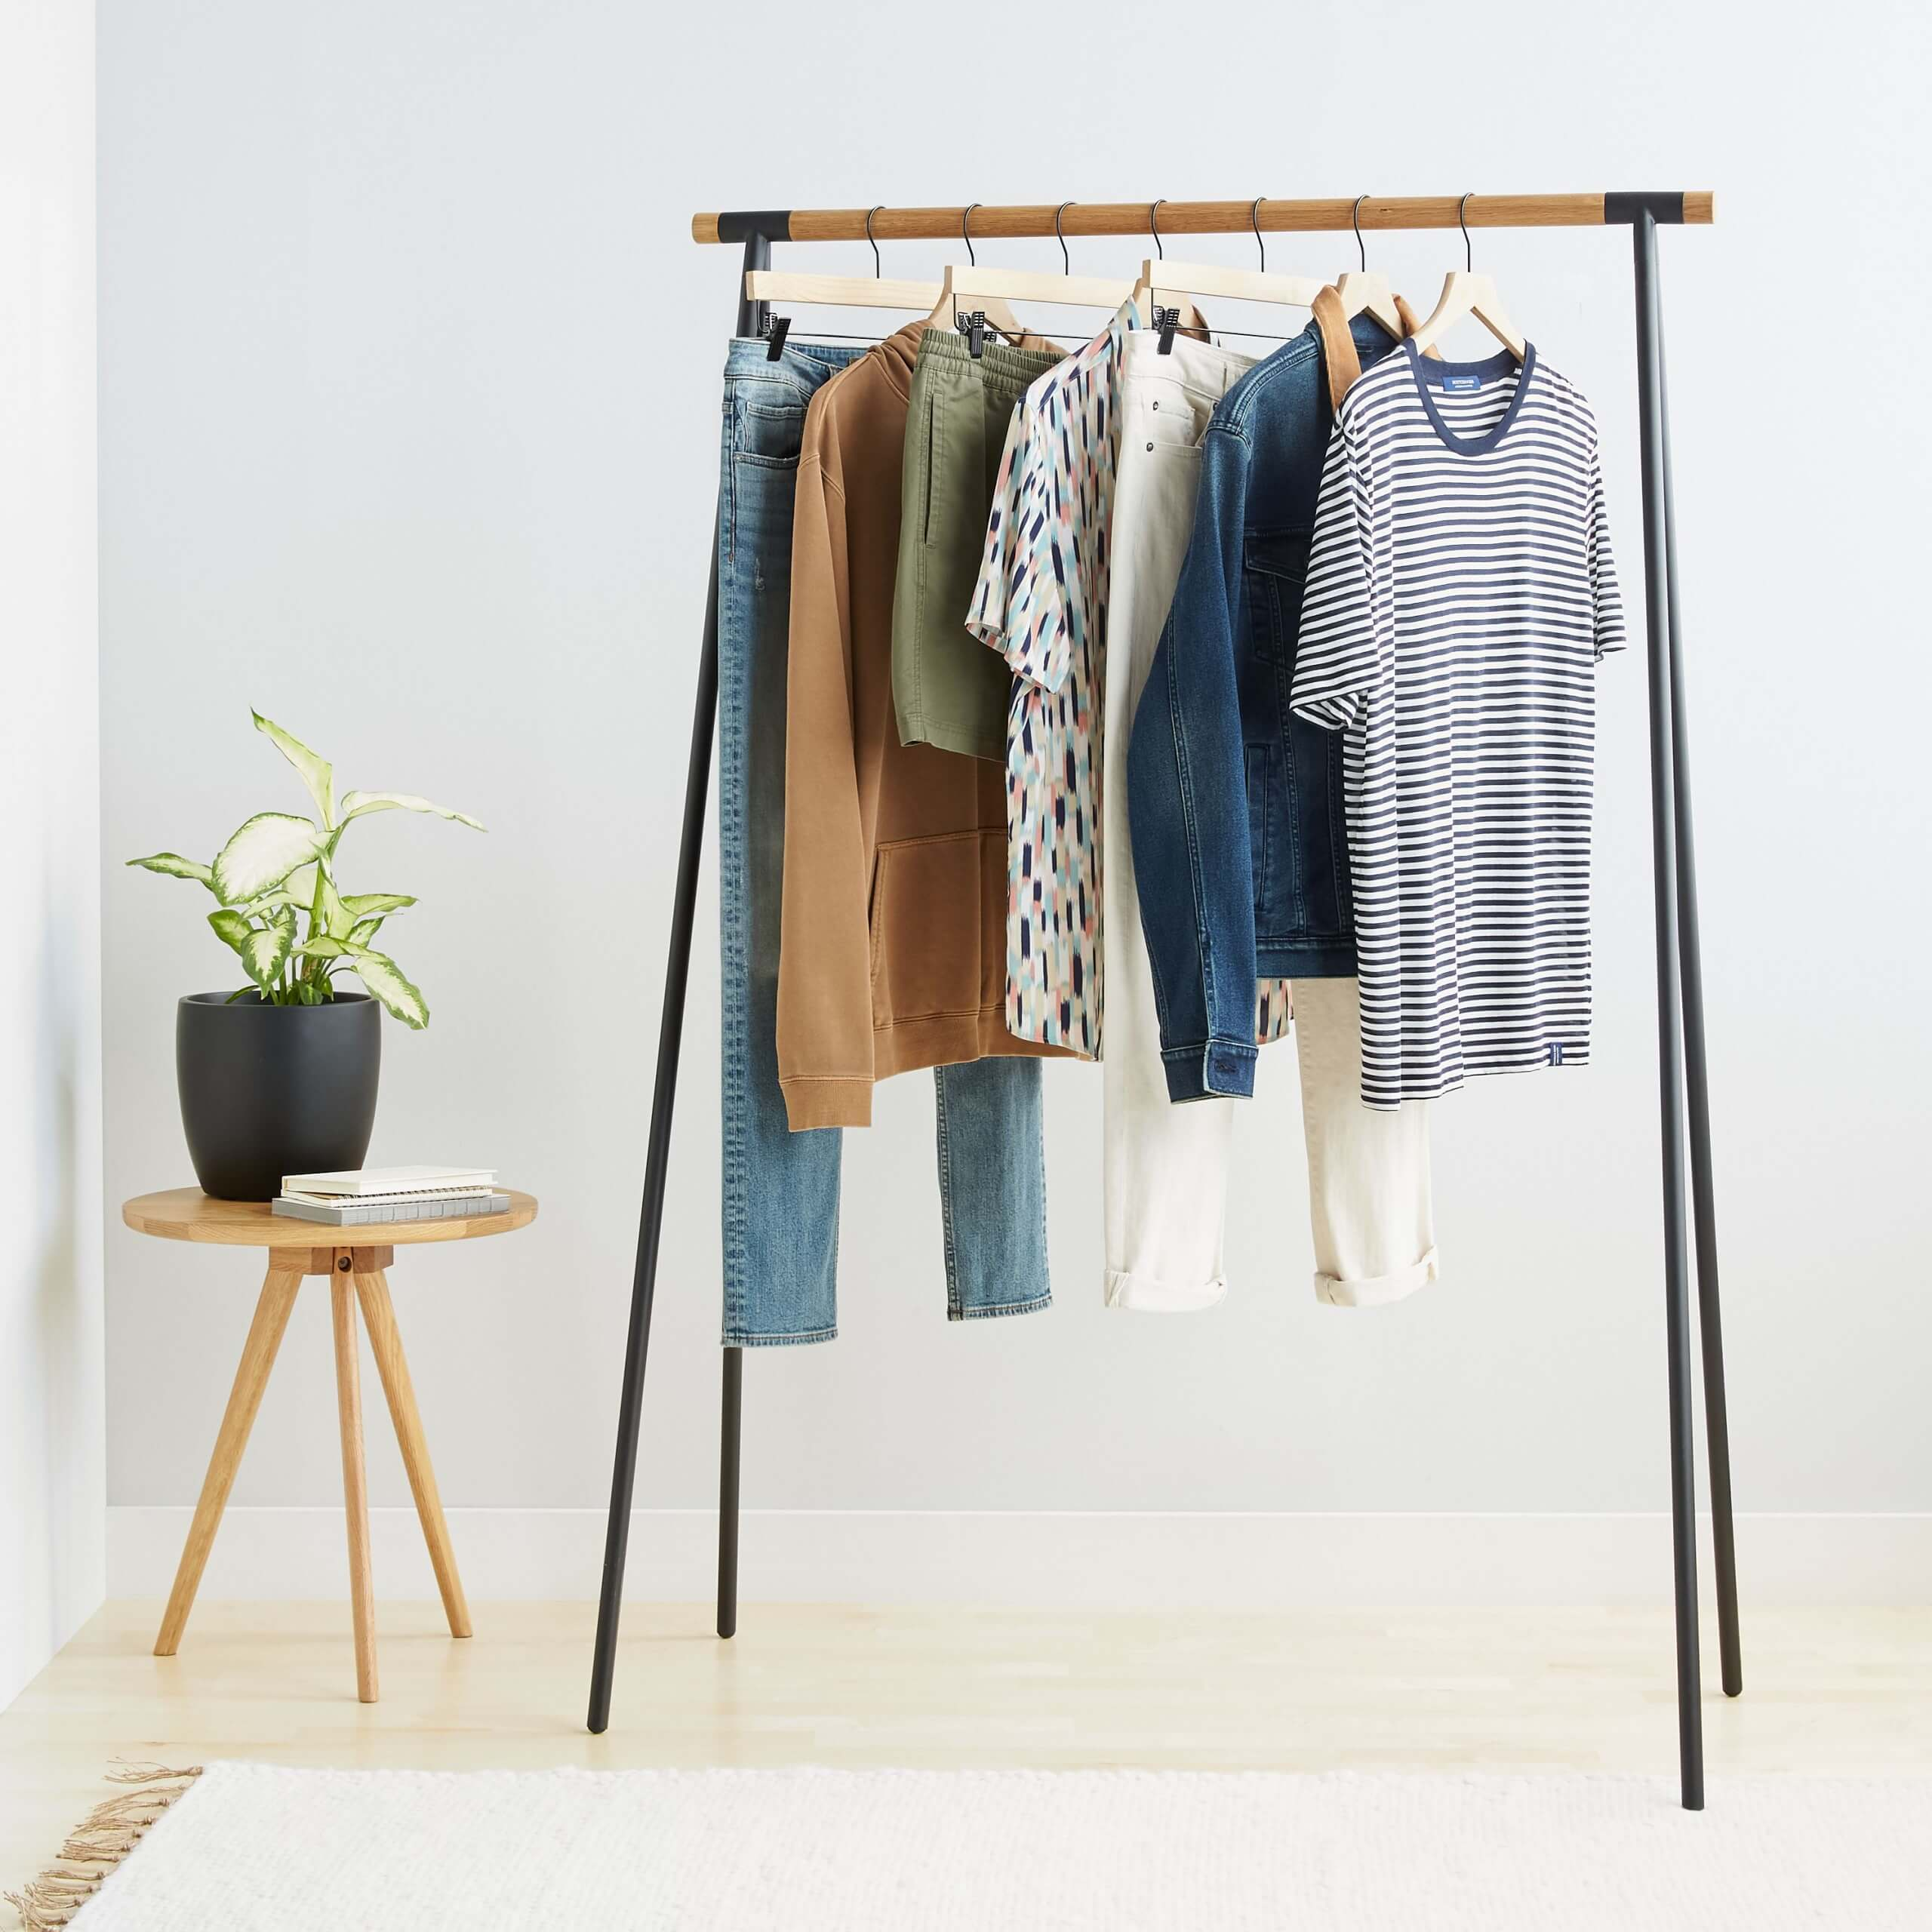 Stitch Fix Men's blue jeans, tan hoodie, olive shorts, printed T-shirt, white pants, denim jacket and blue T-shirt on a rack next to a wooden table with a plant and two books on top and a rug.